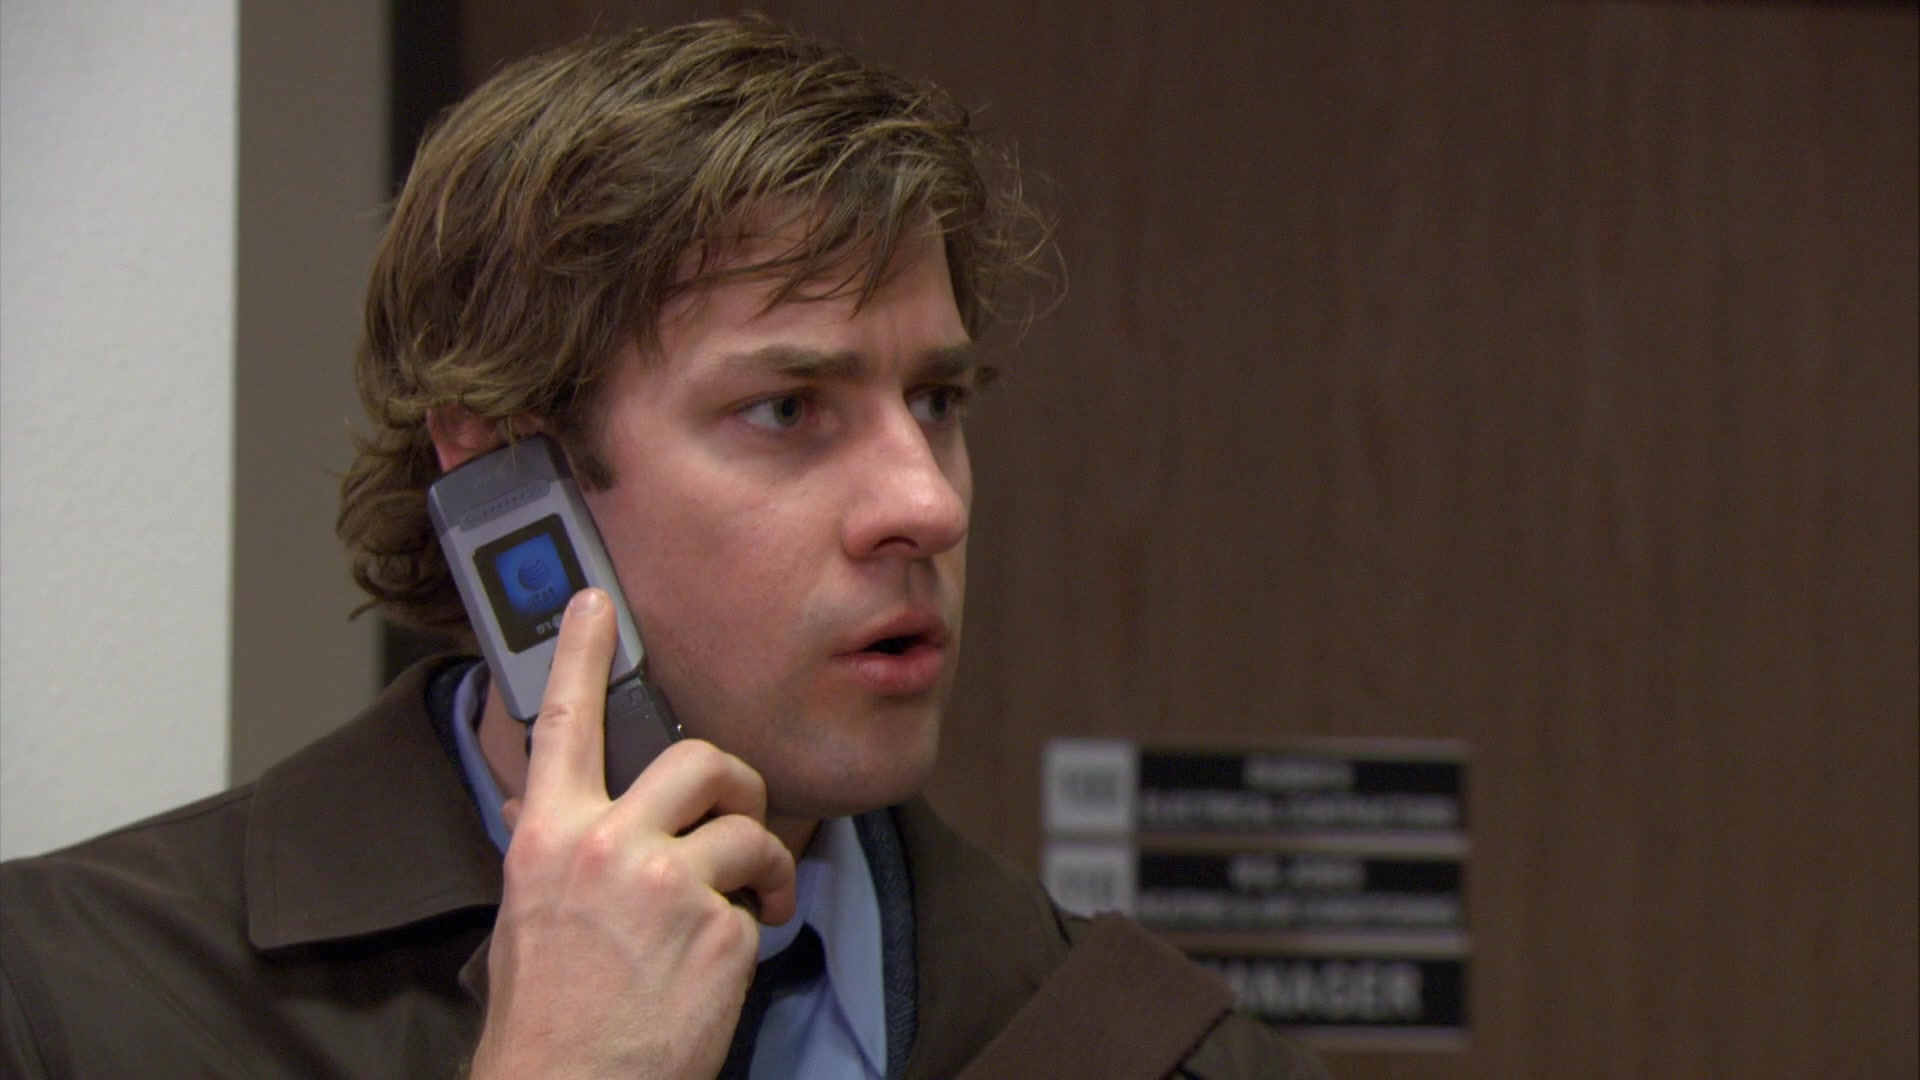 LG Cell Phone Used by John Krasinski (Jim Halpert) in The